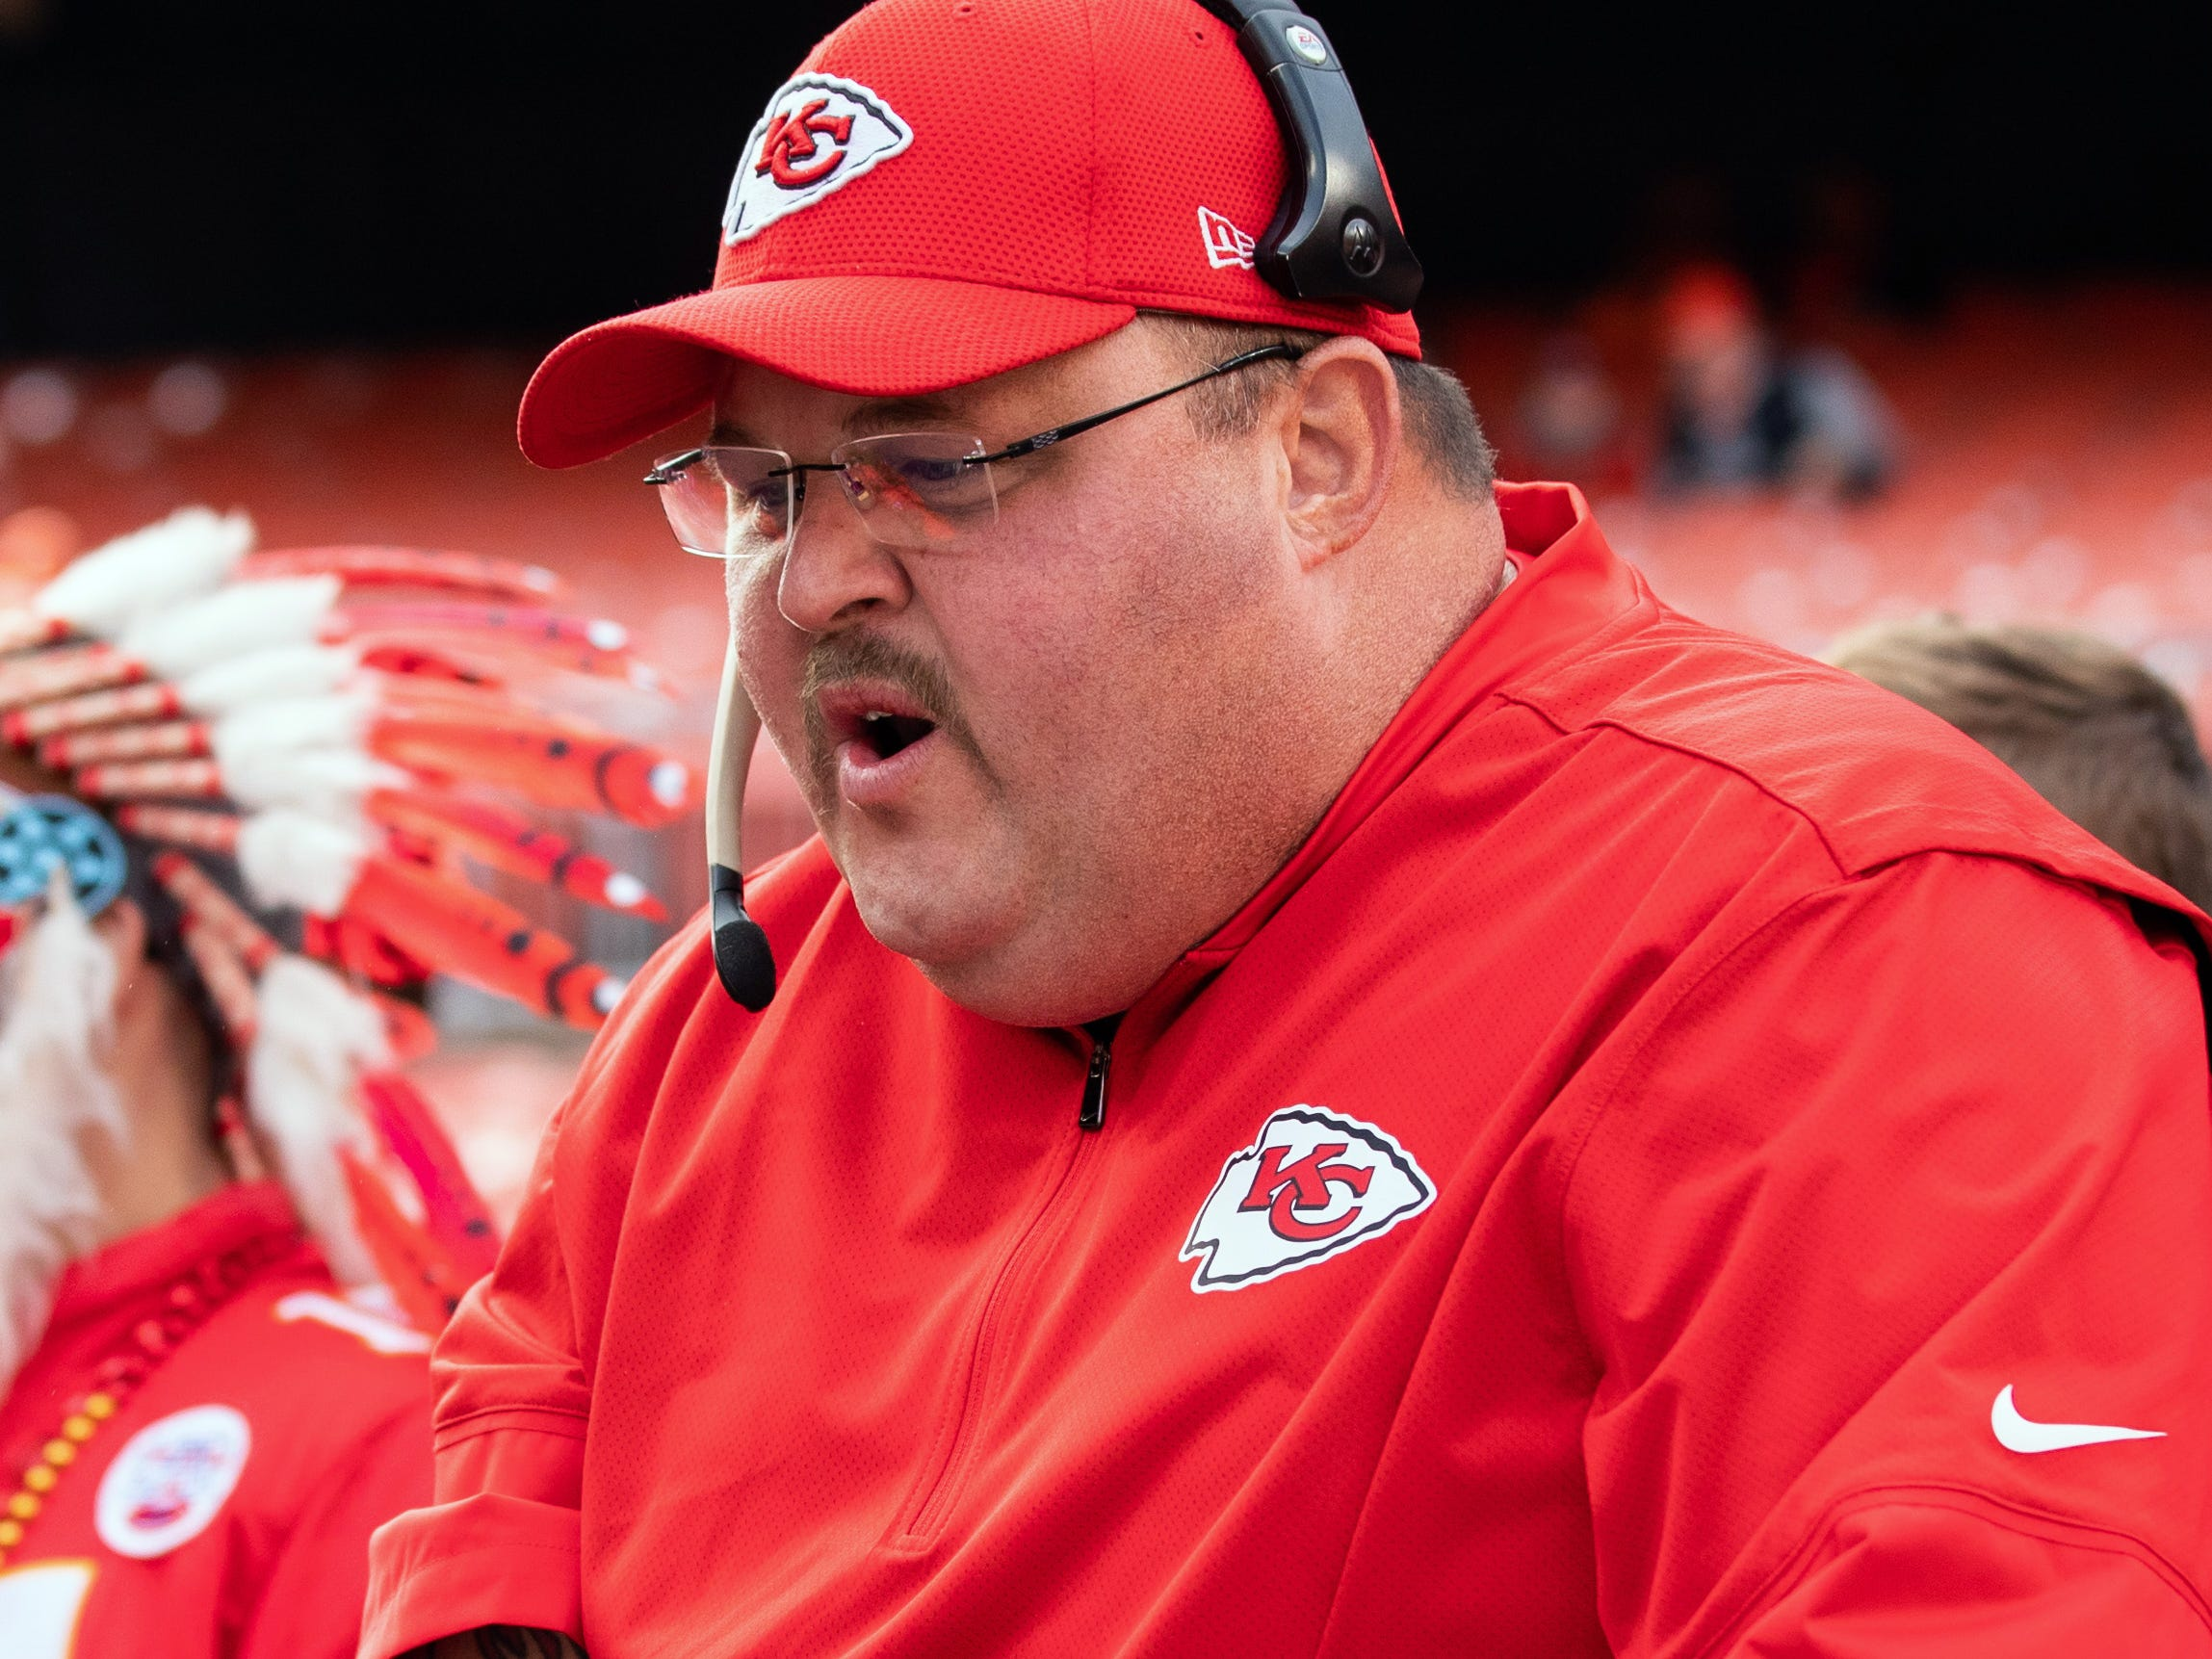 A Kansas City Chiefs fan dressed up as head coach Andy Reid talks with a player during warmups before the game against the Cleveland Browns at FirstEnergy Stadium.